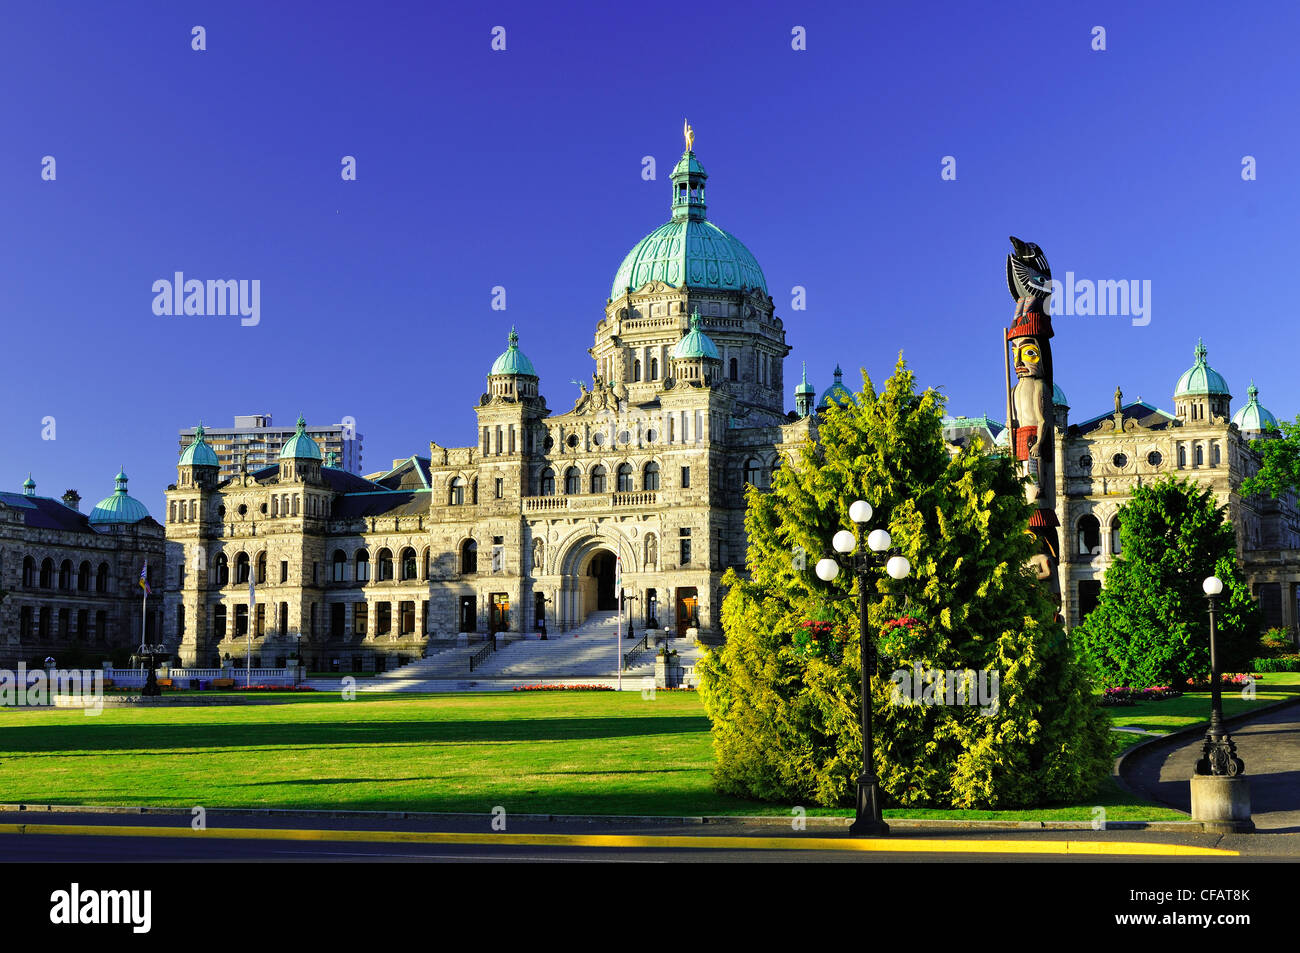 Parliament buildings and totem pole, Victoria, Vancouver Island, British Columbia, Canada Stock Photo